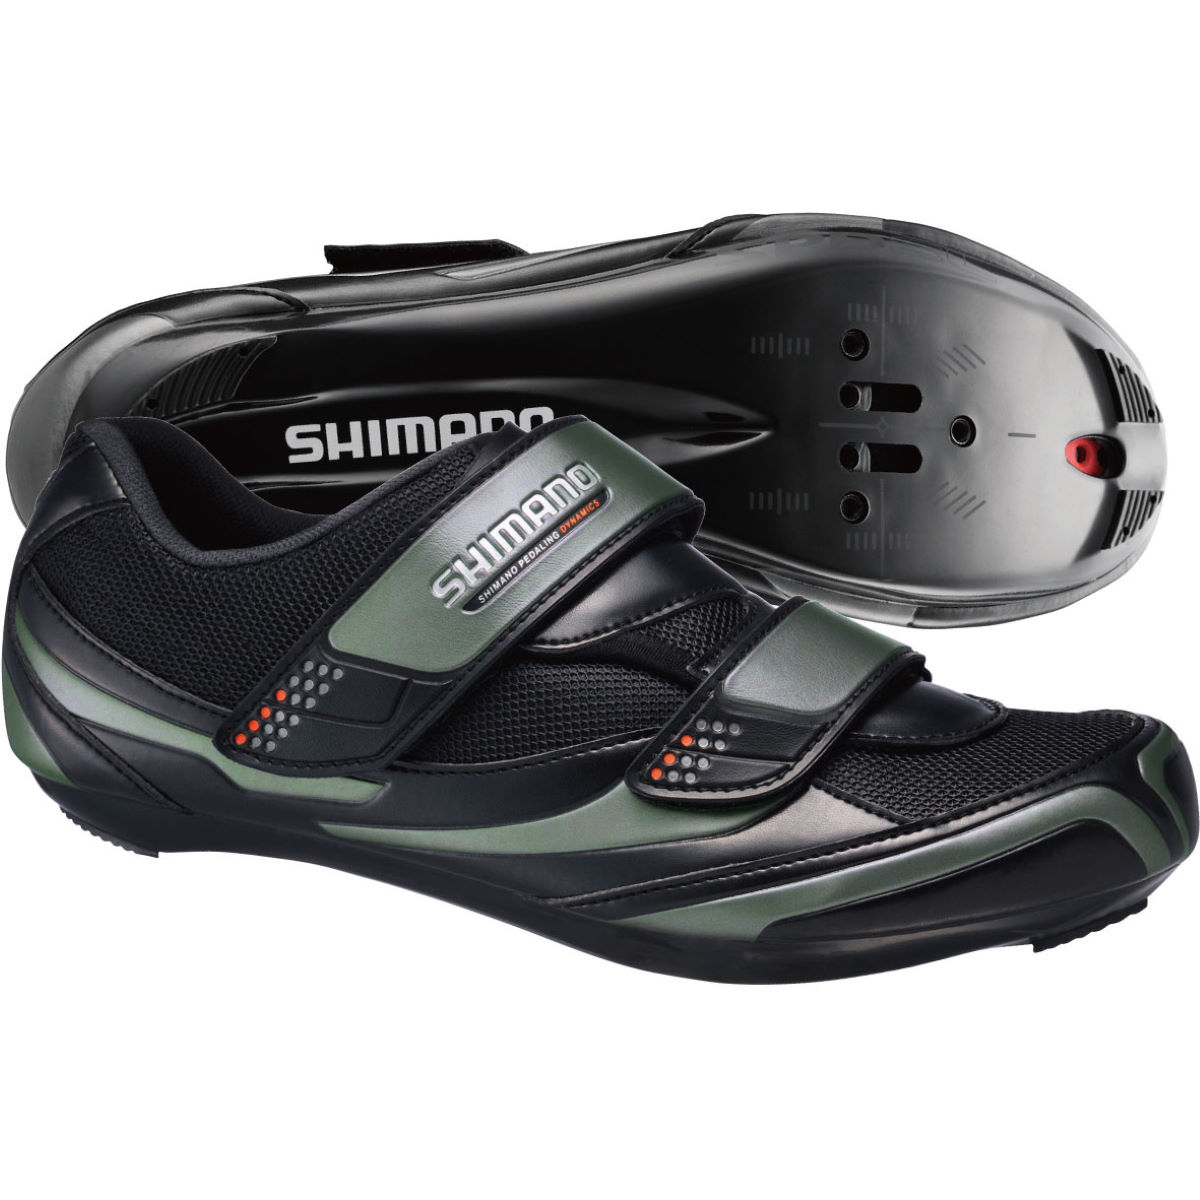 Shimano R064 Road Cycling Shoes